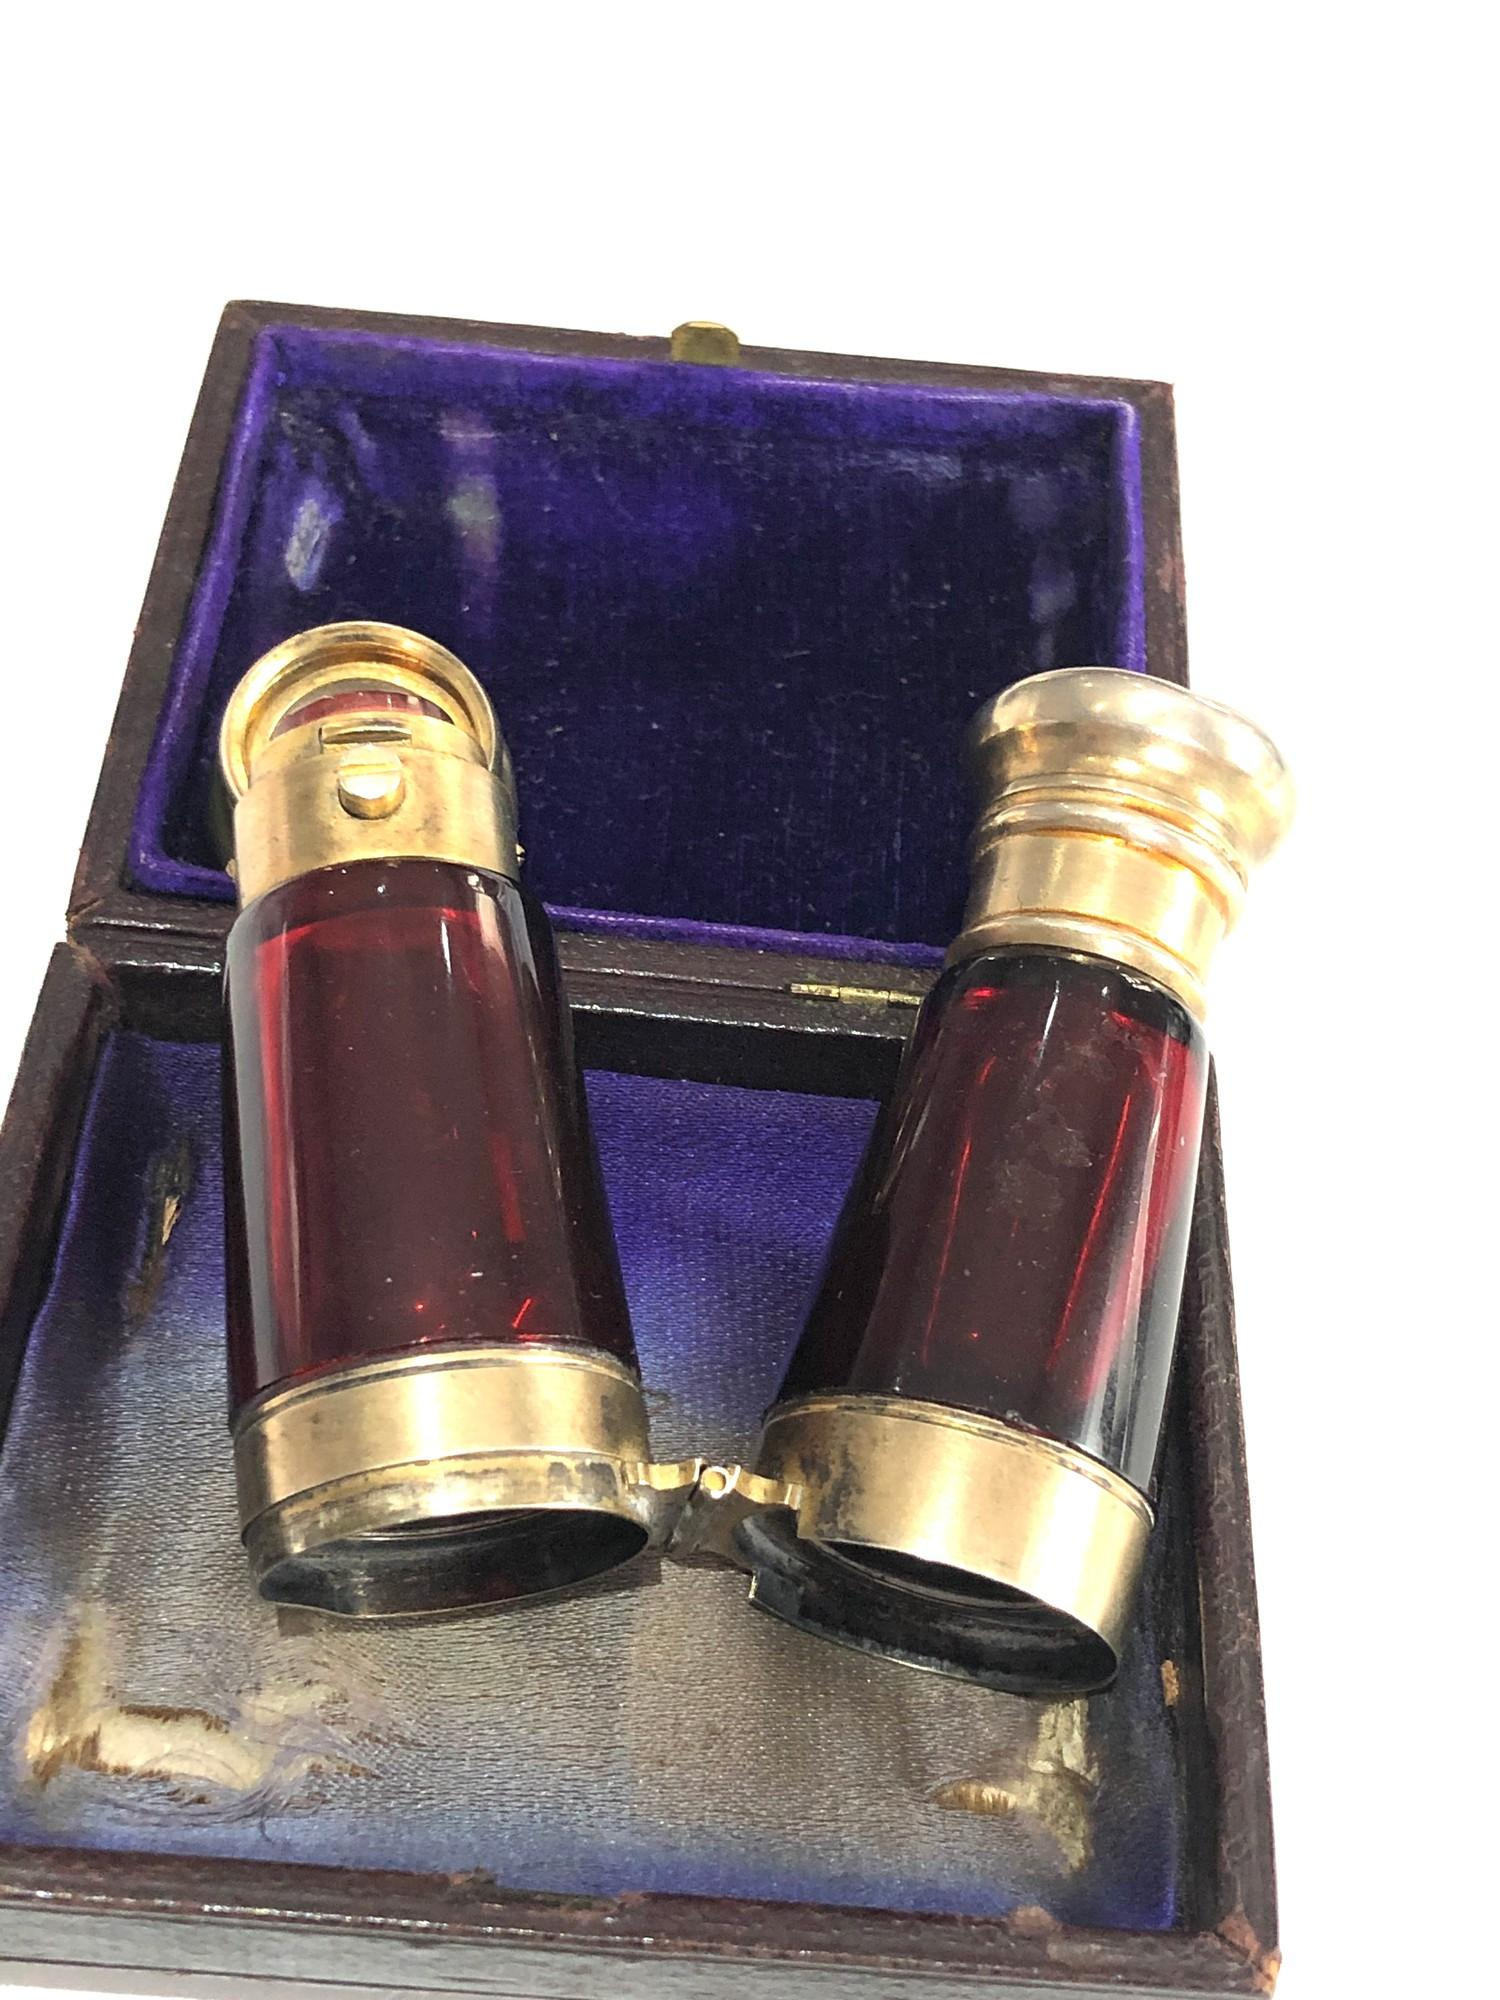 Rare antique ruby glass and silver mounted novelty binoculars scent bottle in original box by Maw - Image 2 of 11